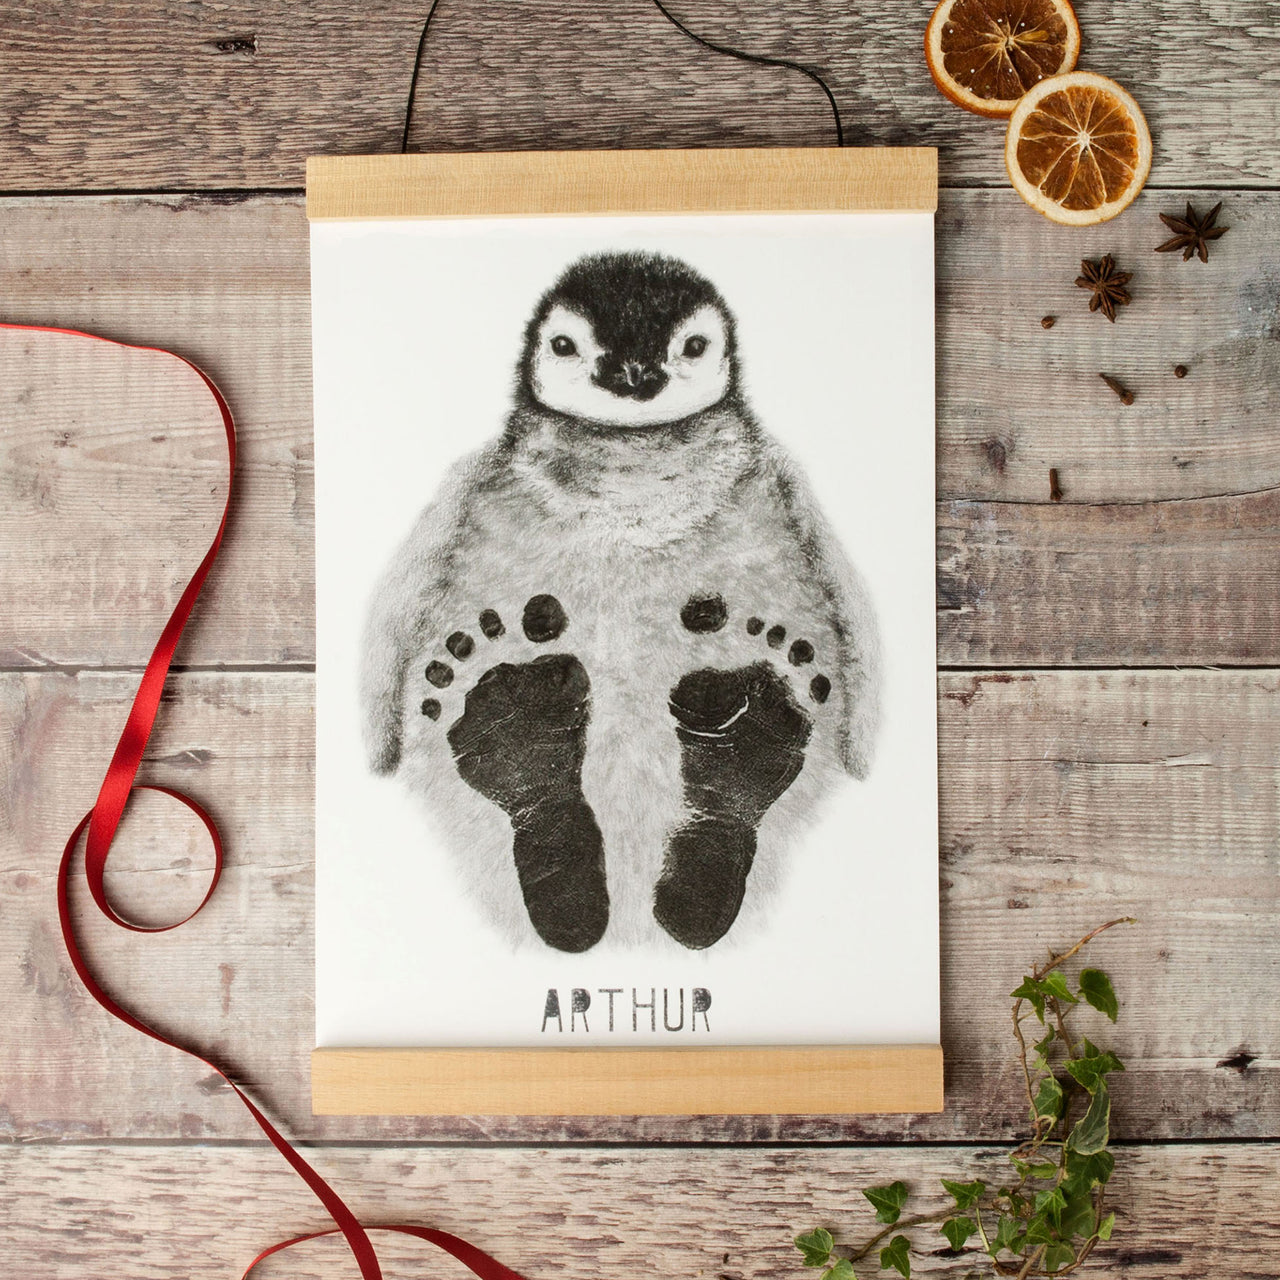 Baby penguin footprint kit for Christmas with orange and red ribbons